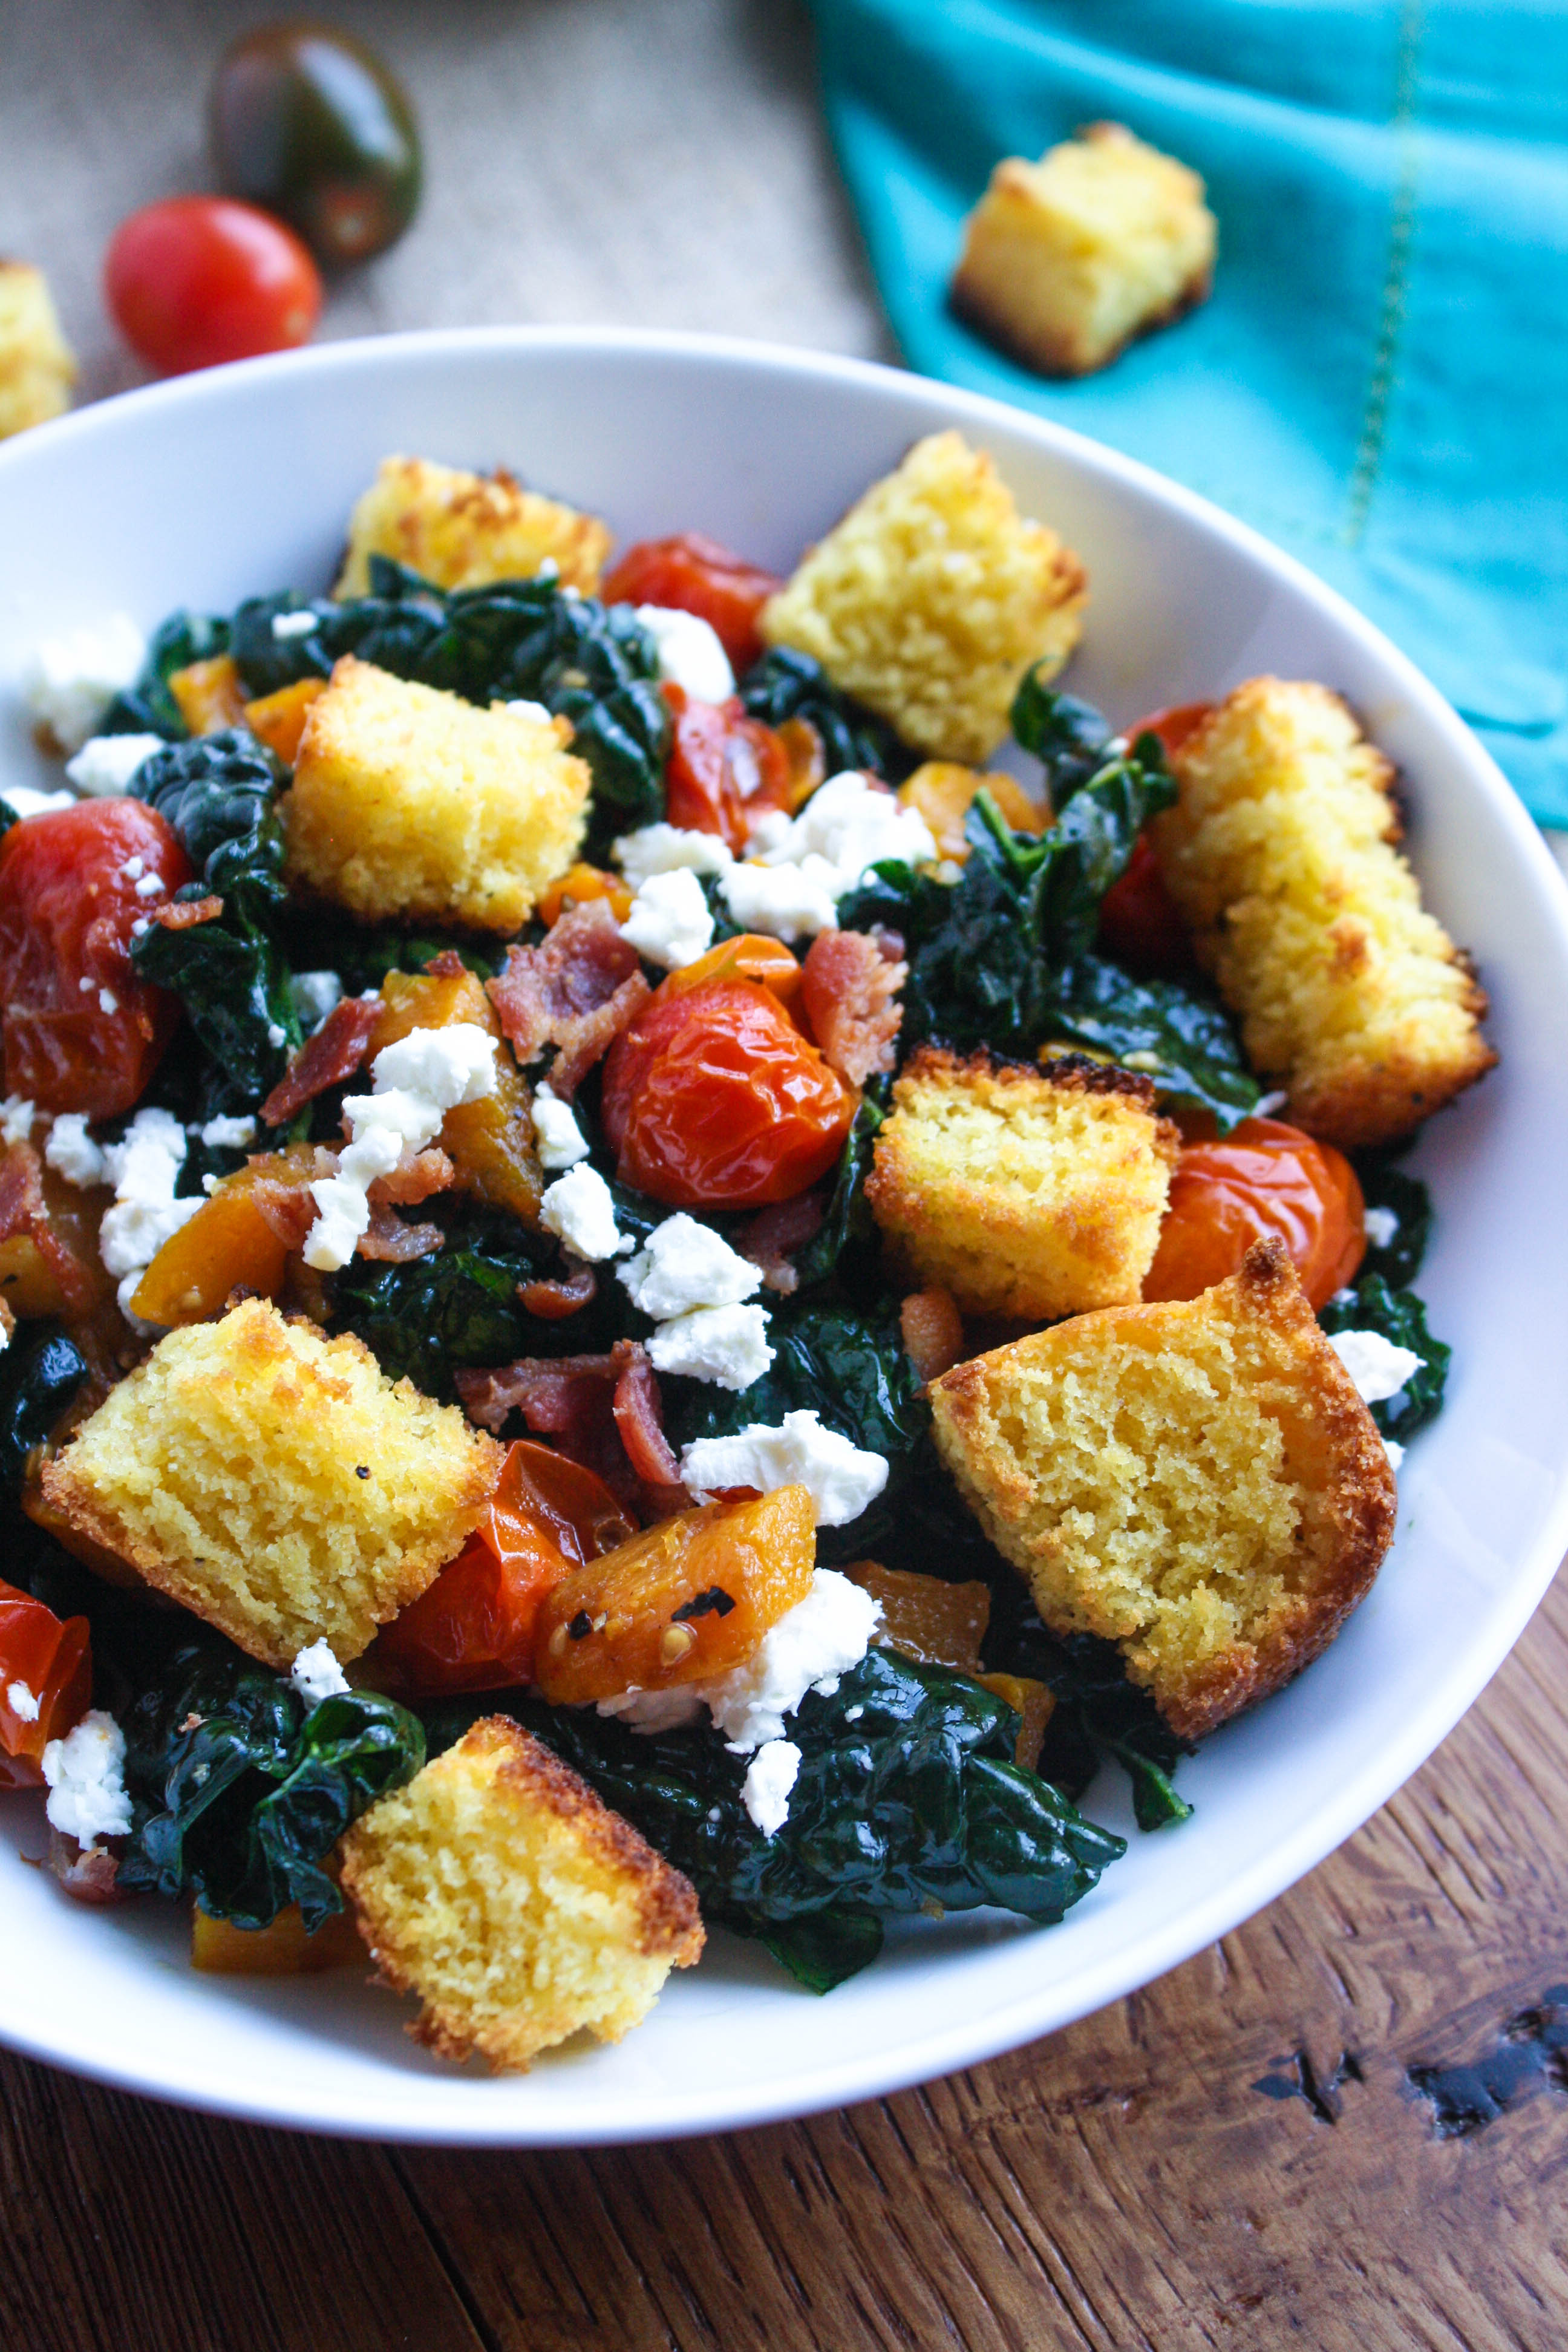 Kale and Cornbread Crouton Salad is a welcome dish the day after Thanksgiving. Use some leftovers to make the cornbread croutons for this wonderful kale salad!